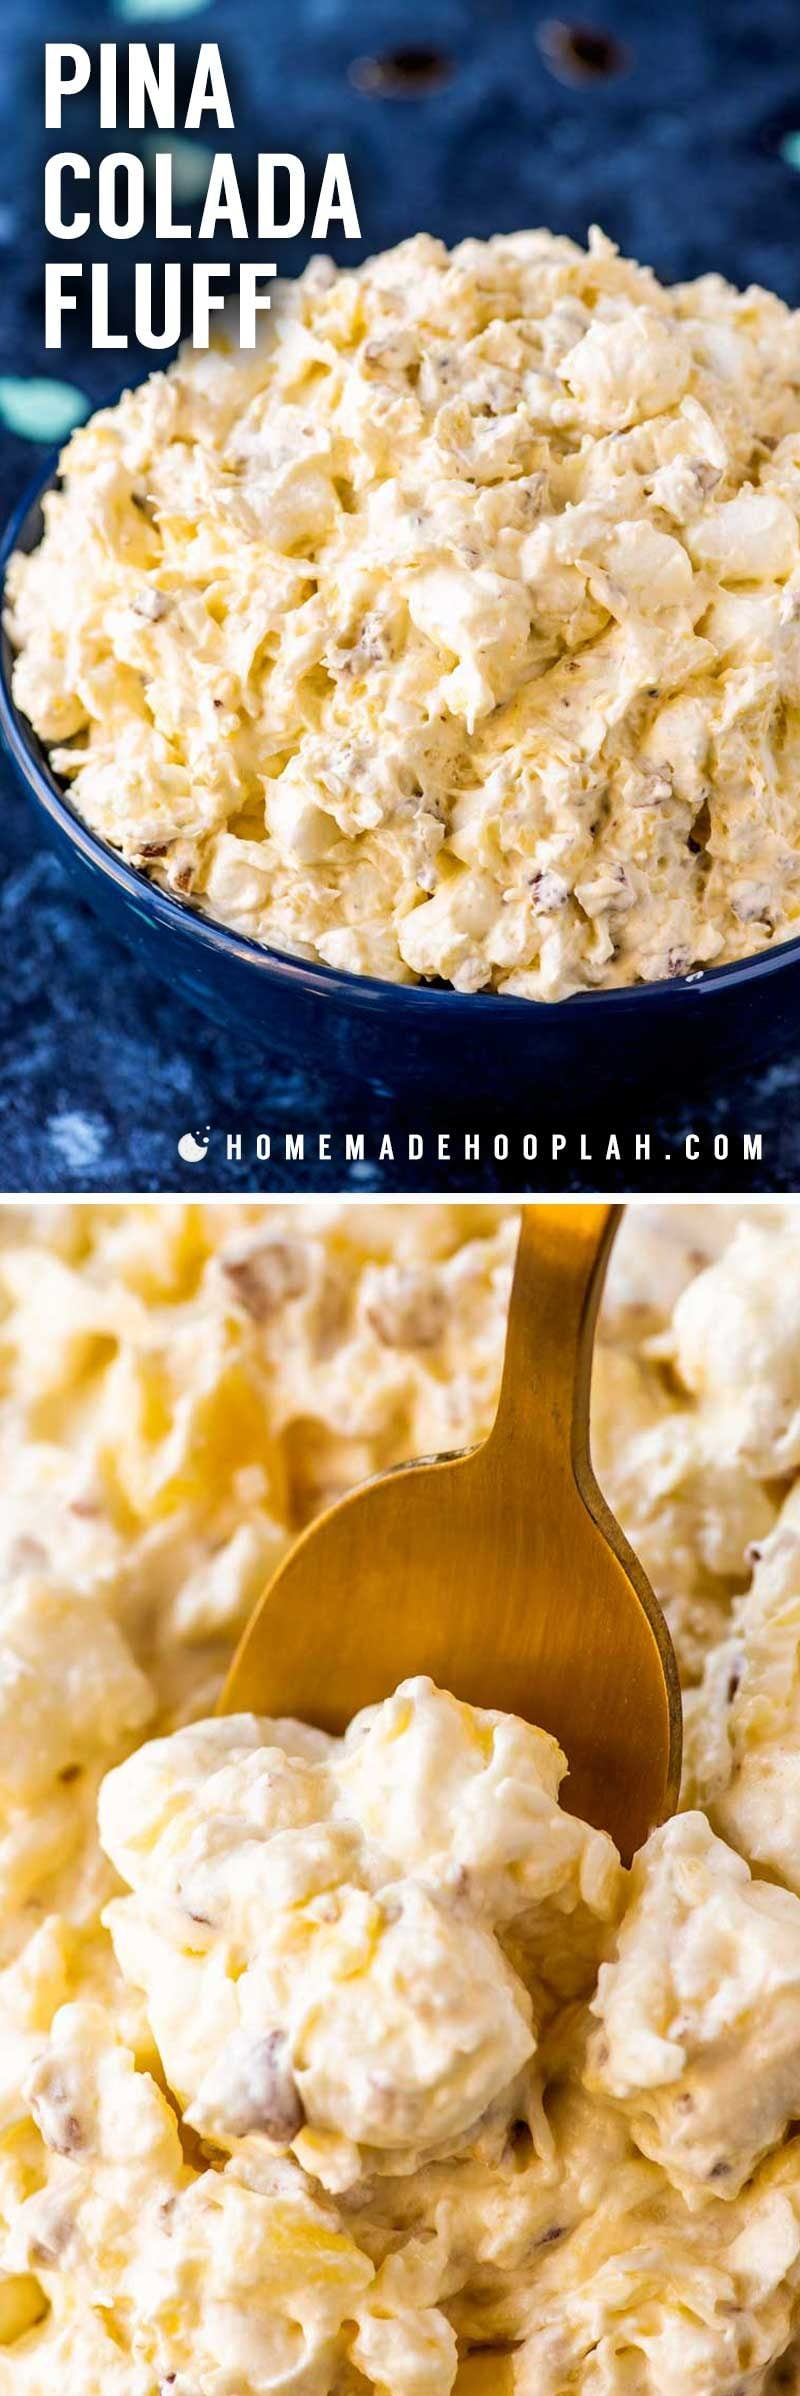 Pina Colada Fluff! Whether you need an easy side dish or a simple dessert, this pineapple and coconut infused pina colada fluff is a great choice that only takes 5 minutes to whip up. | HomemadeHooplah.com